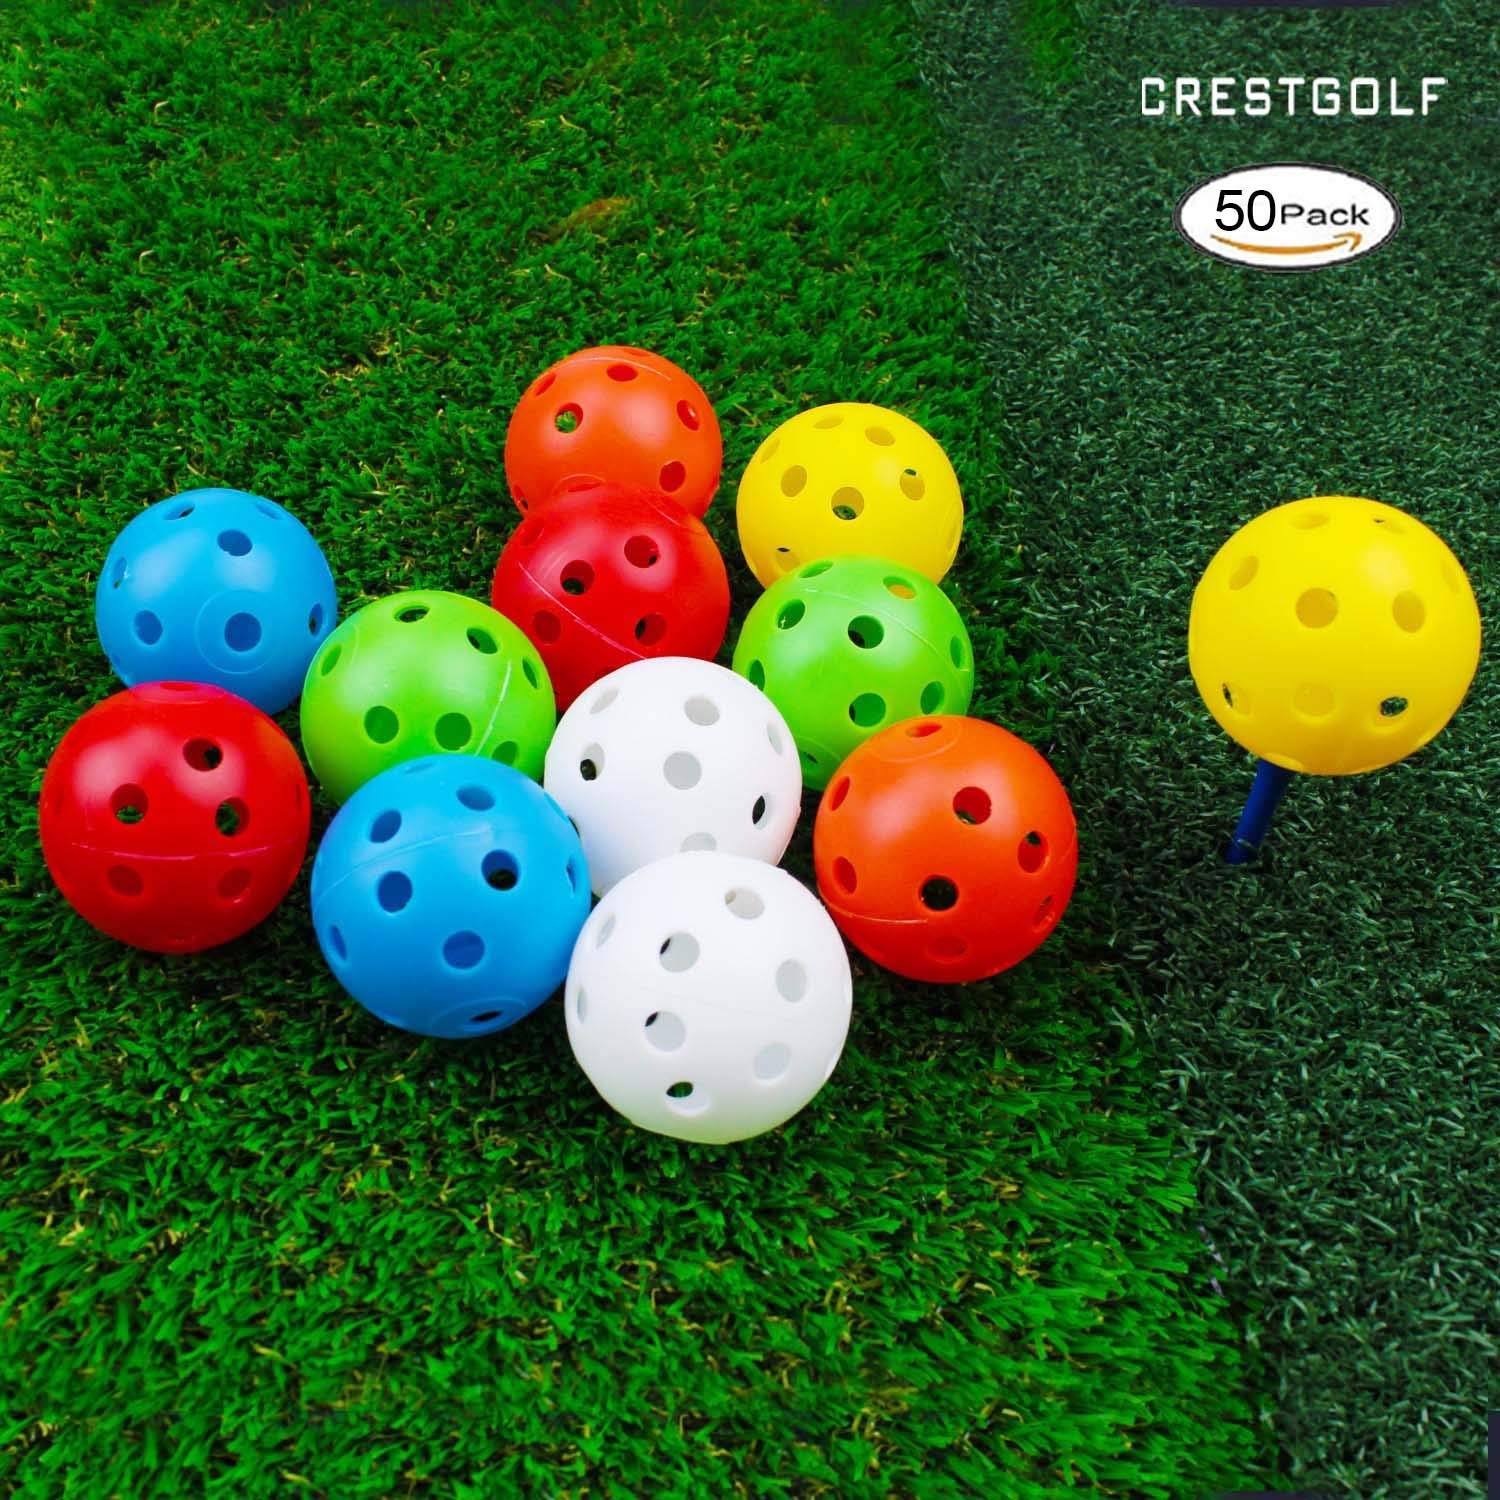 Crestgolf 12/50 Pack Plastic Golf Training Balls - Airflow Hollow 40mm Golf Balls for Driving Range, Swing Practice, Home Use,Pet Play.(Mixed,50pack) by Crestgolf